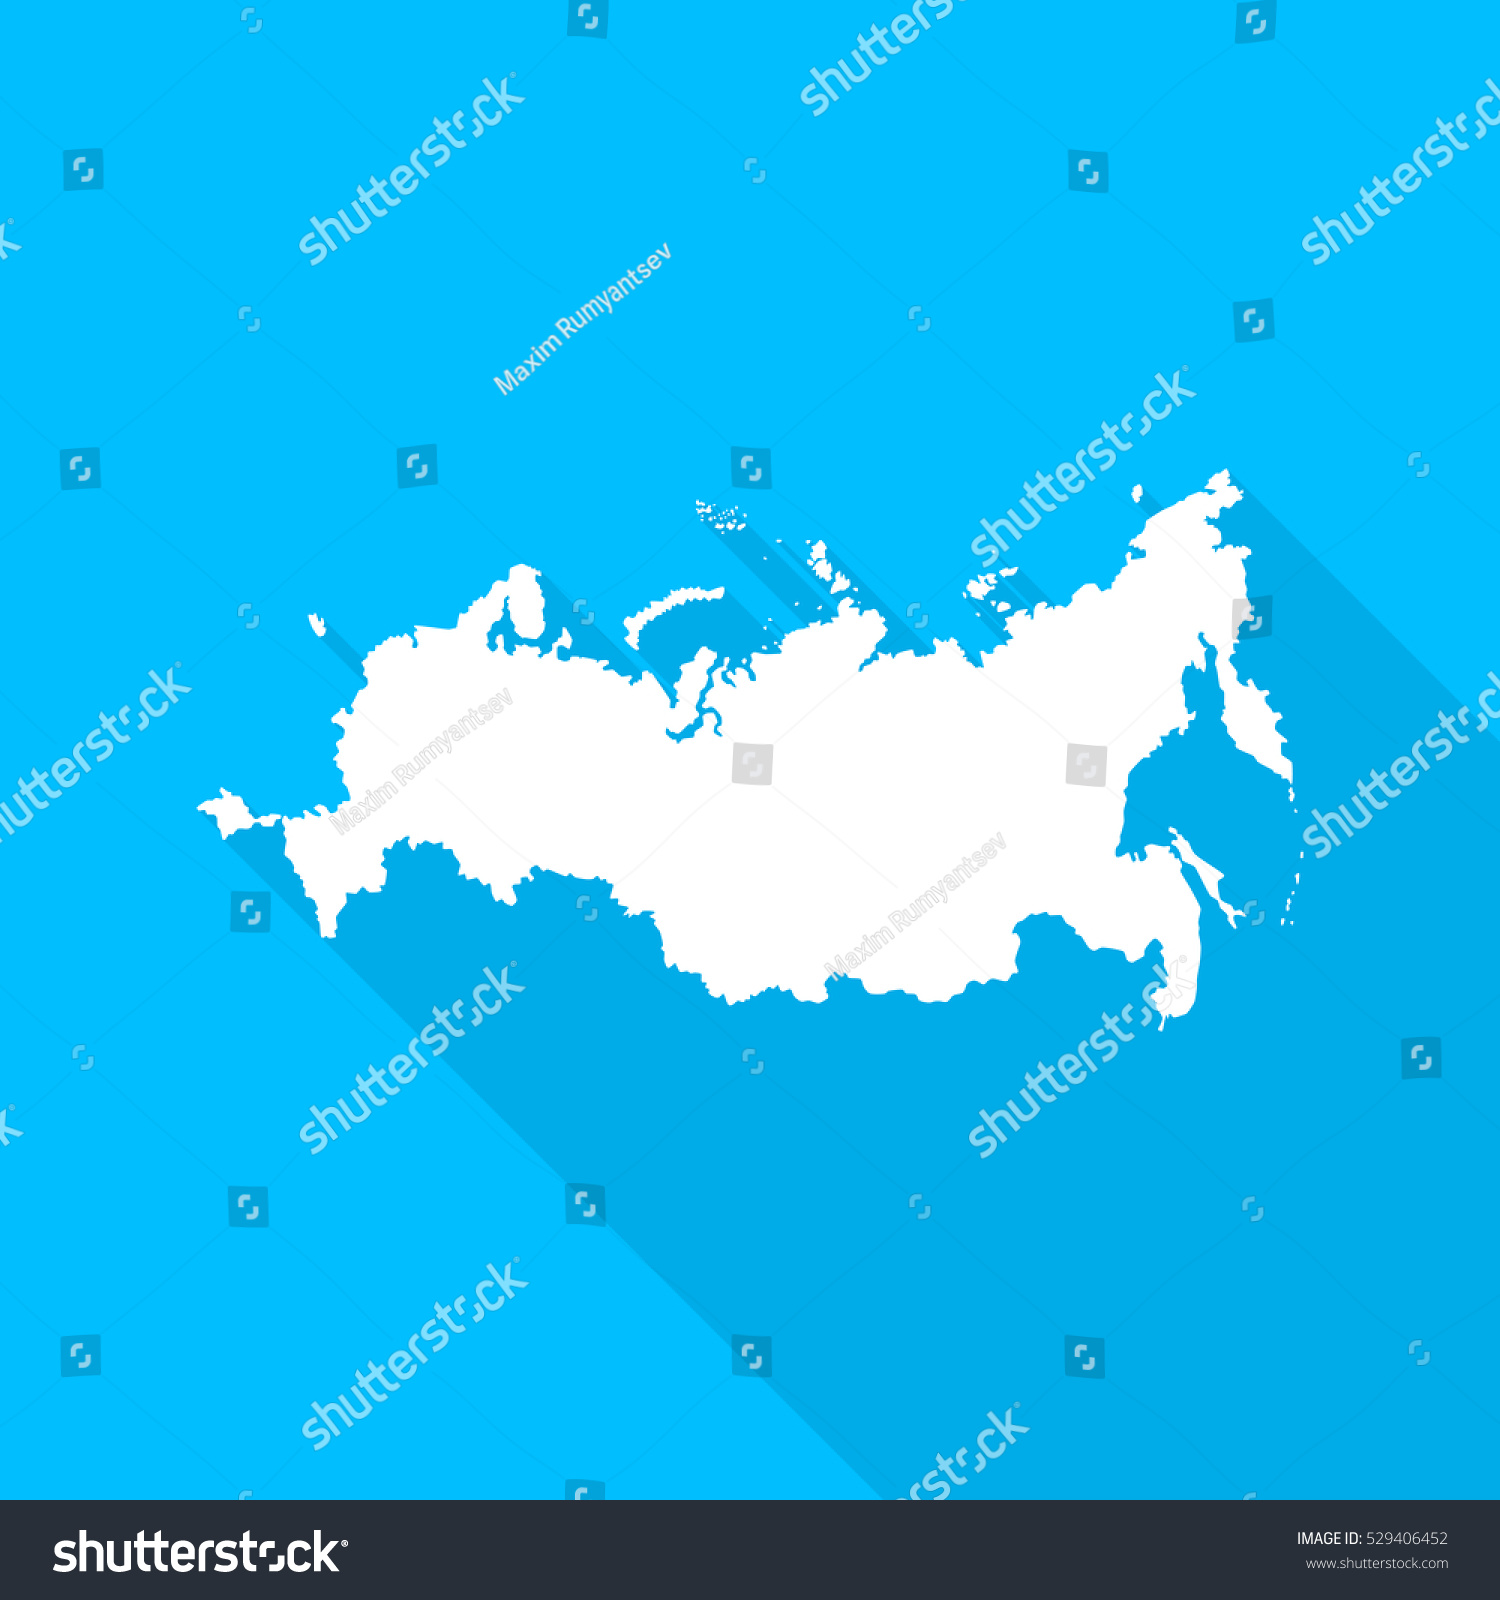 Russian Federation Map Long Shadow On Stock Vector (Royalty Free ...